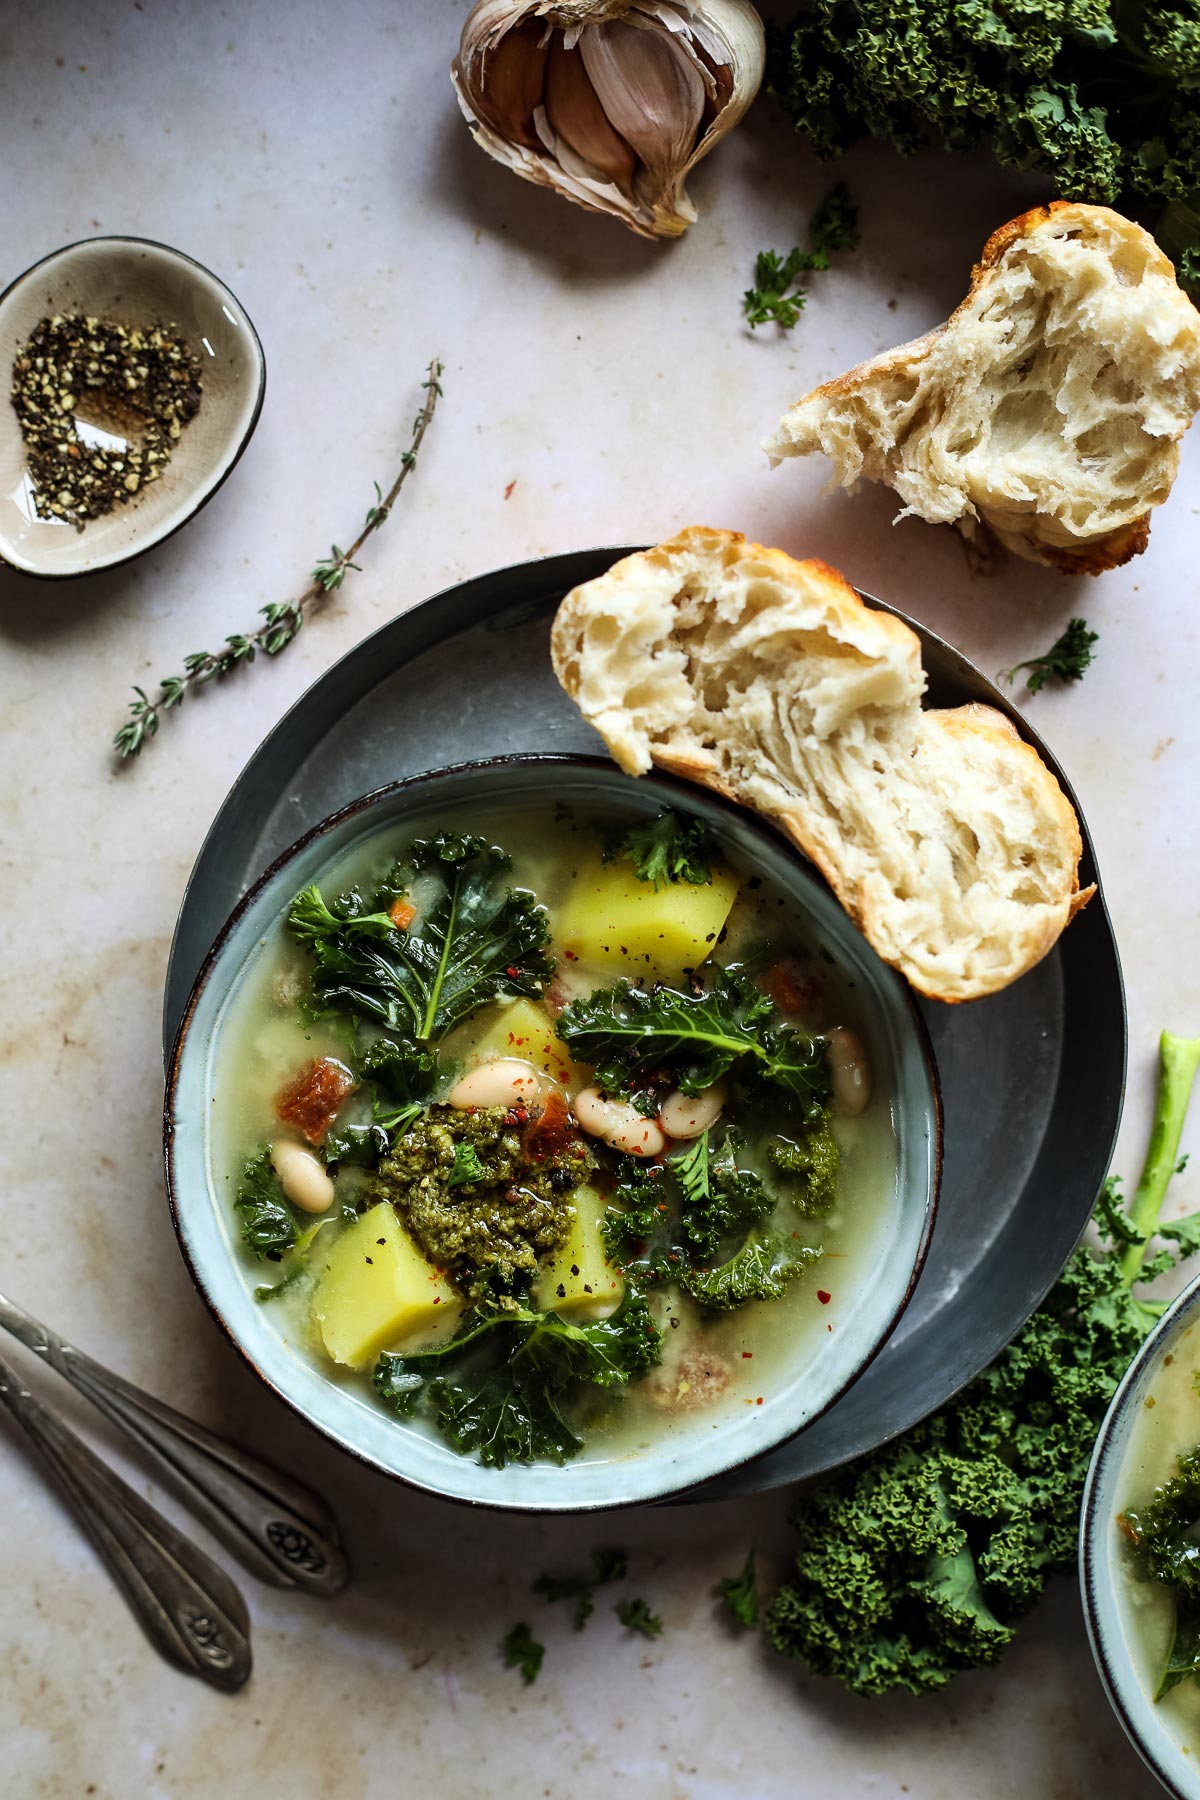 Kale Tuscan soup in a bowl with bread.